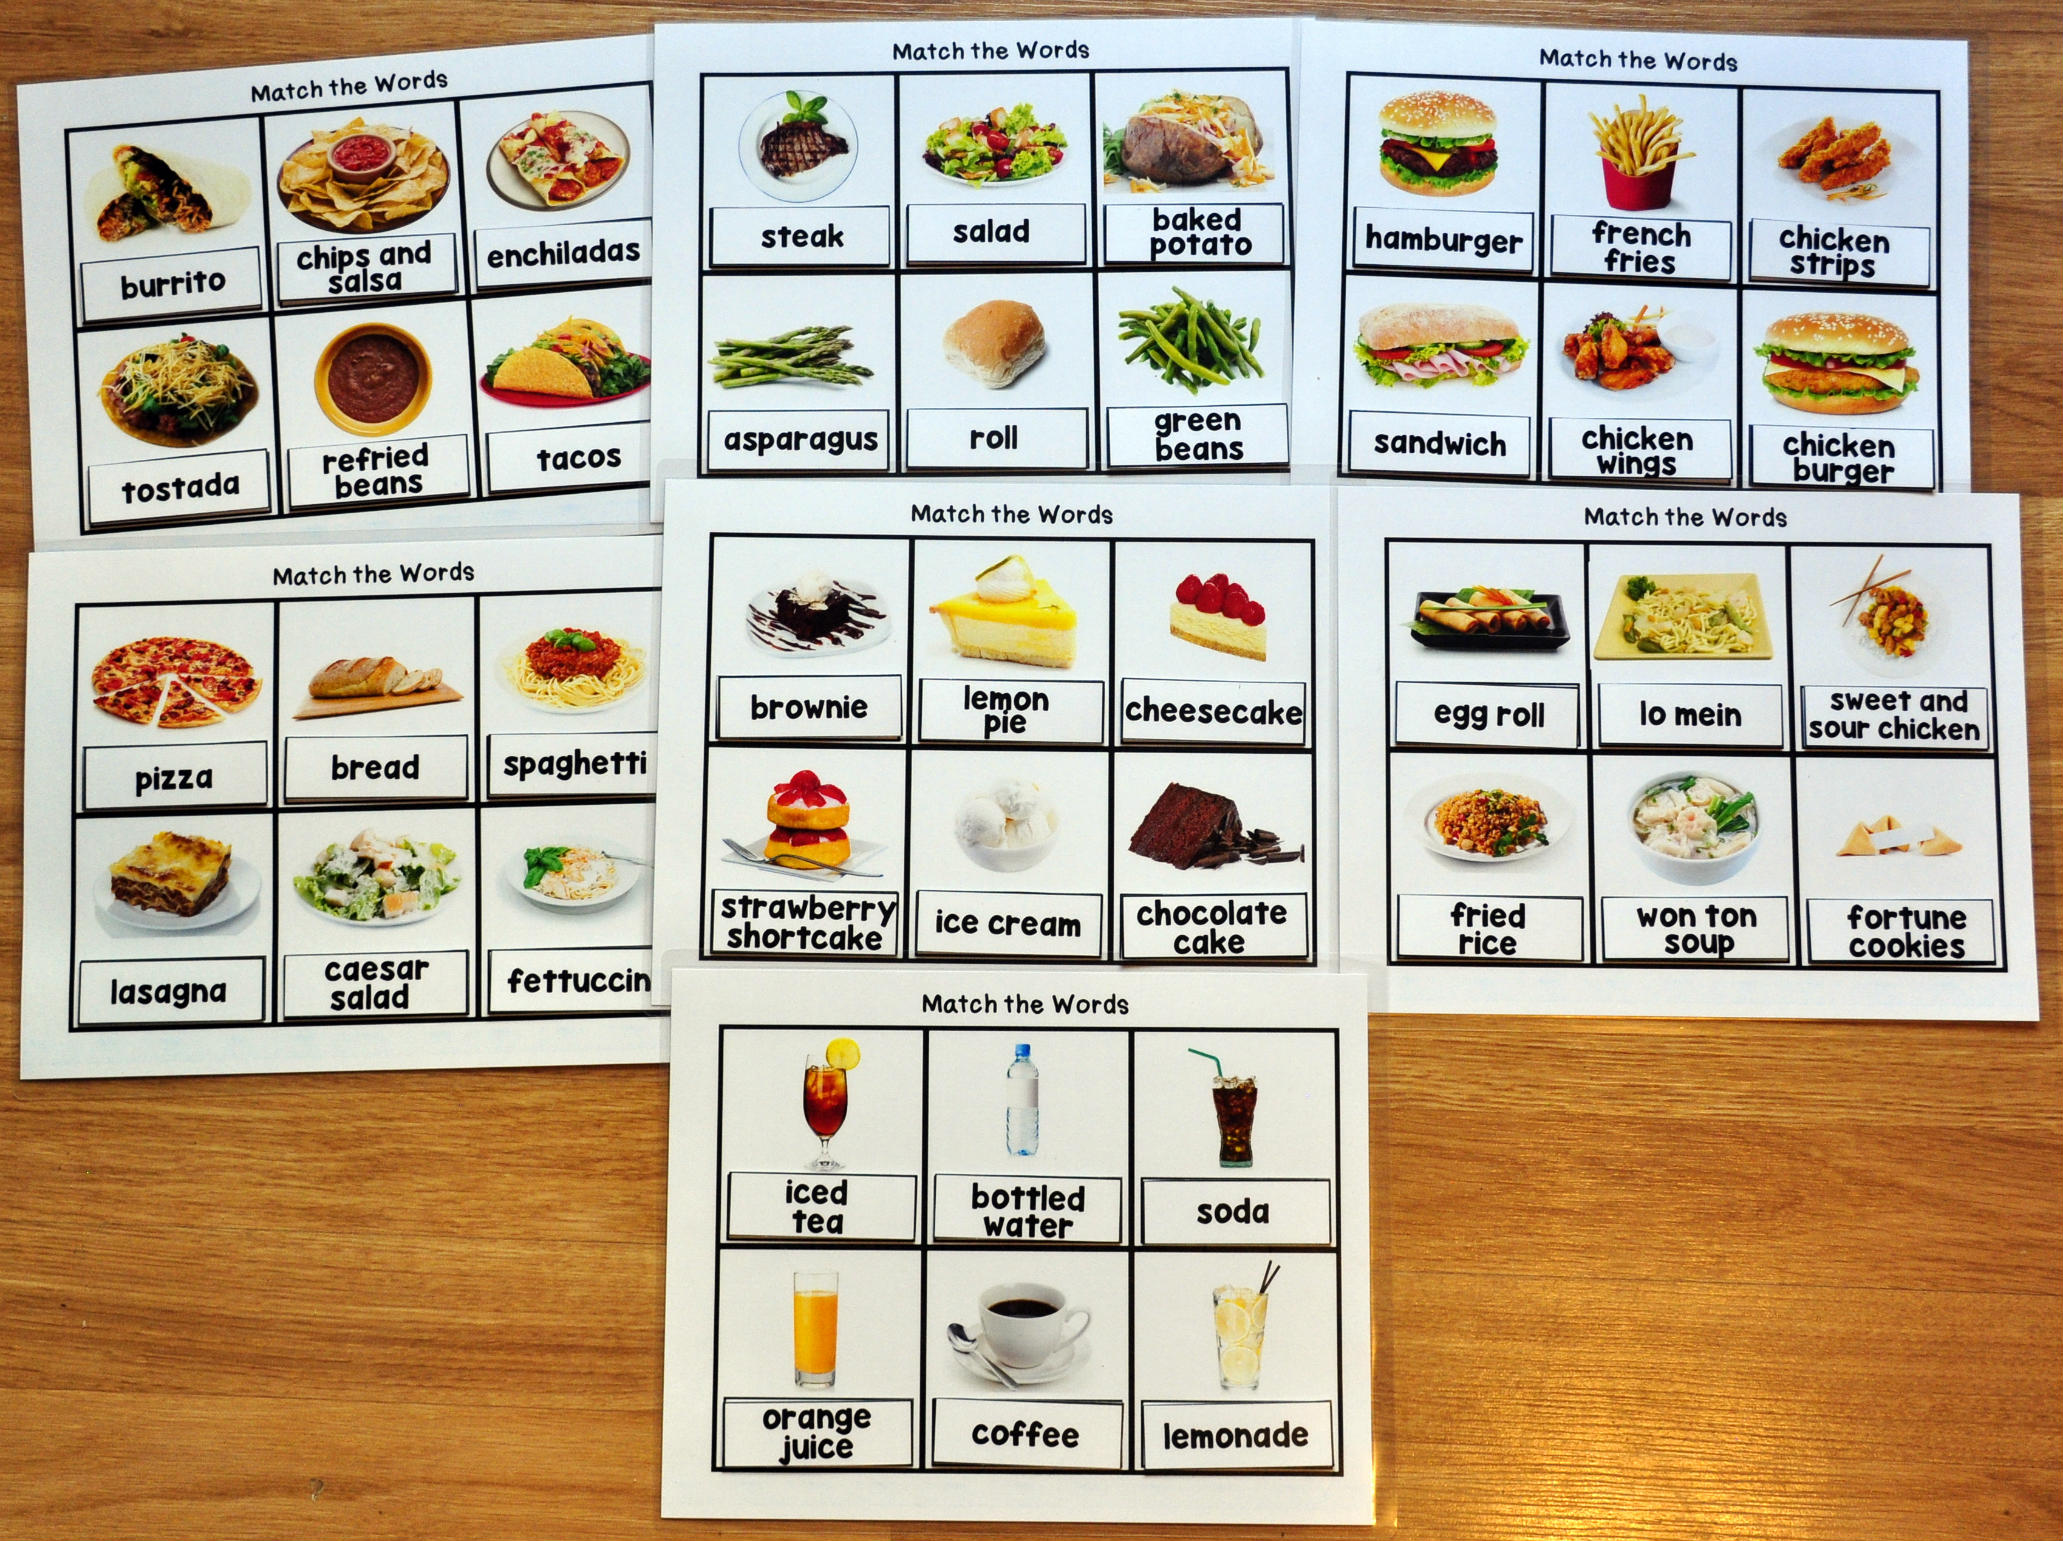 Functional Sight Words Matching Mats 2: Restaurant Words